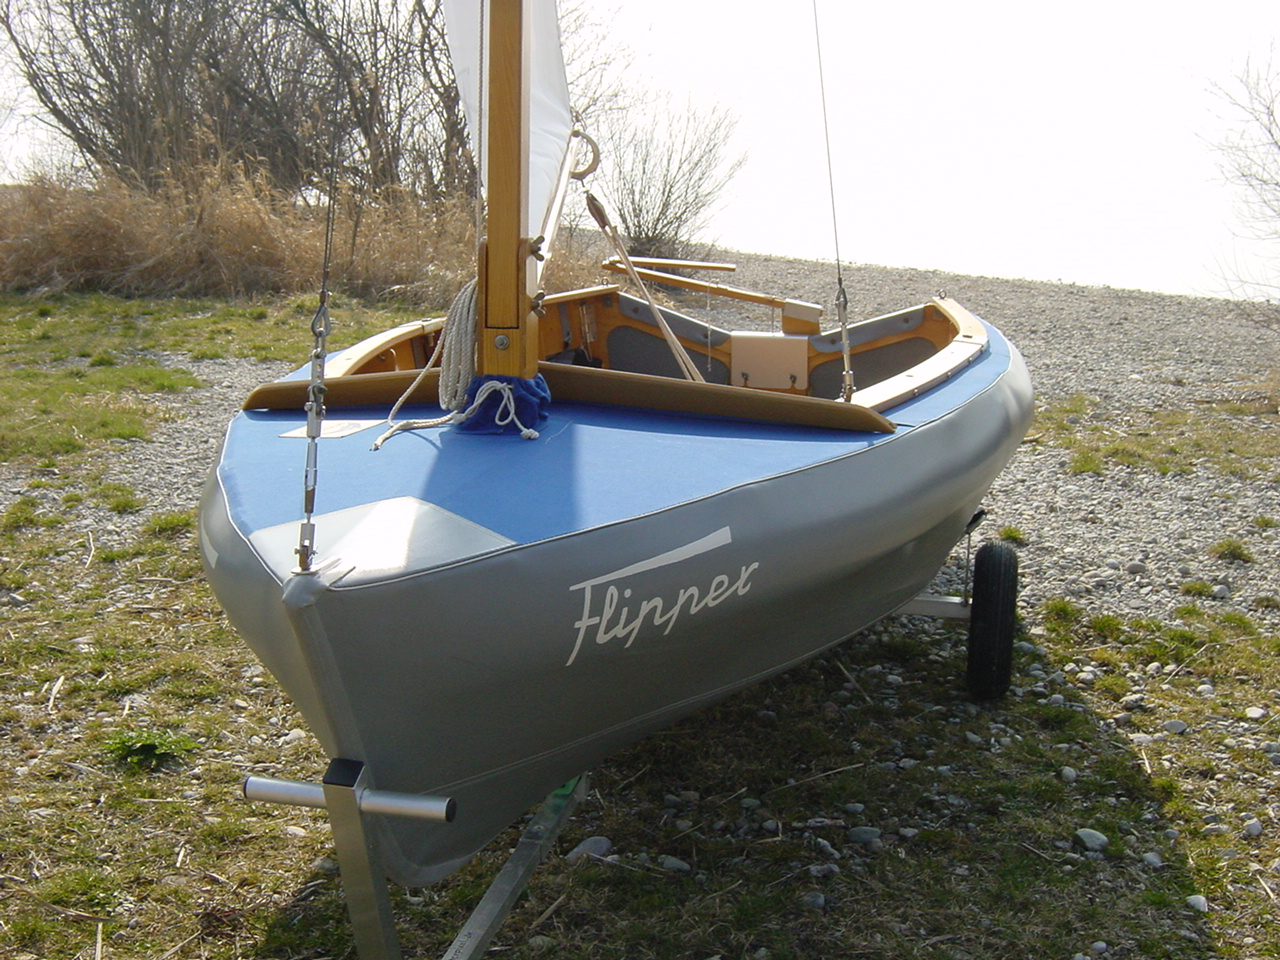 Design and Performance of Skin on Frame Sailboats